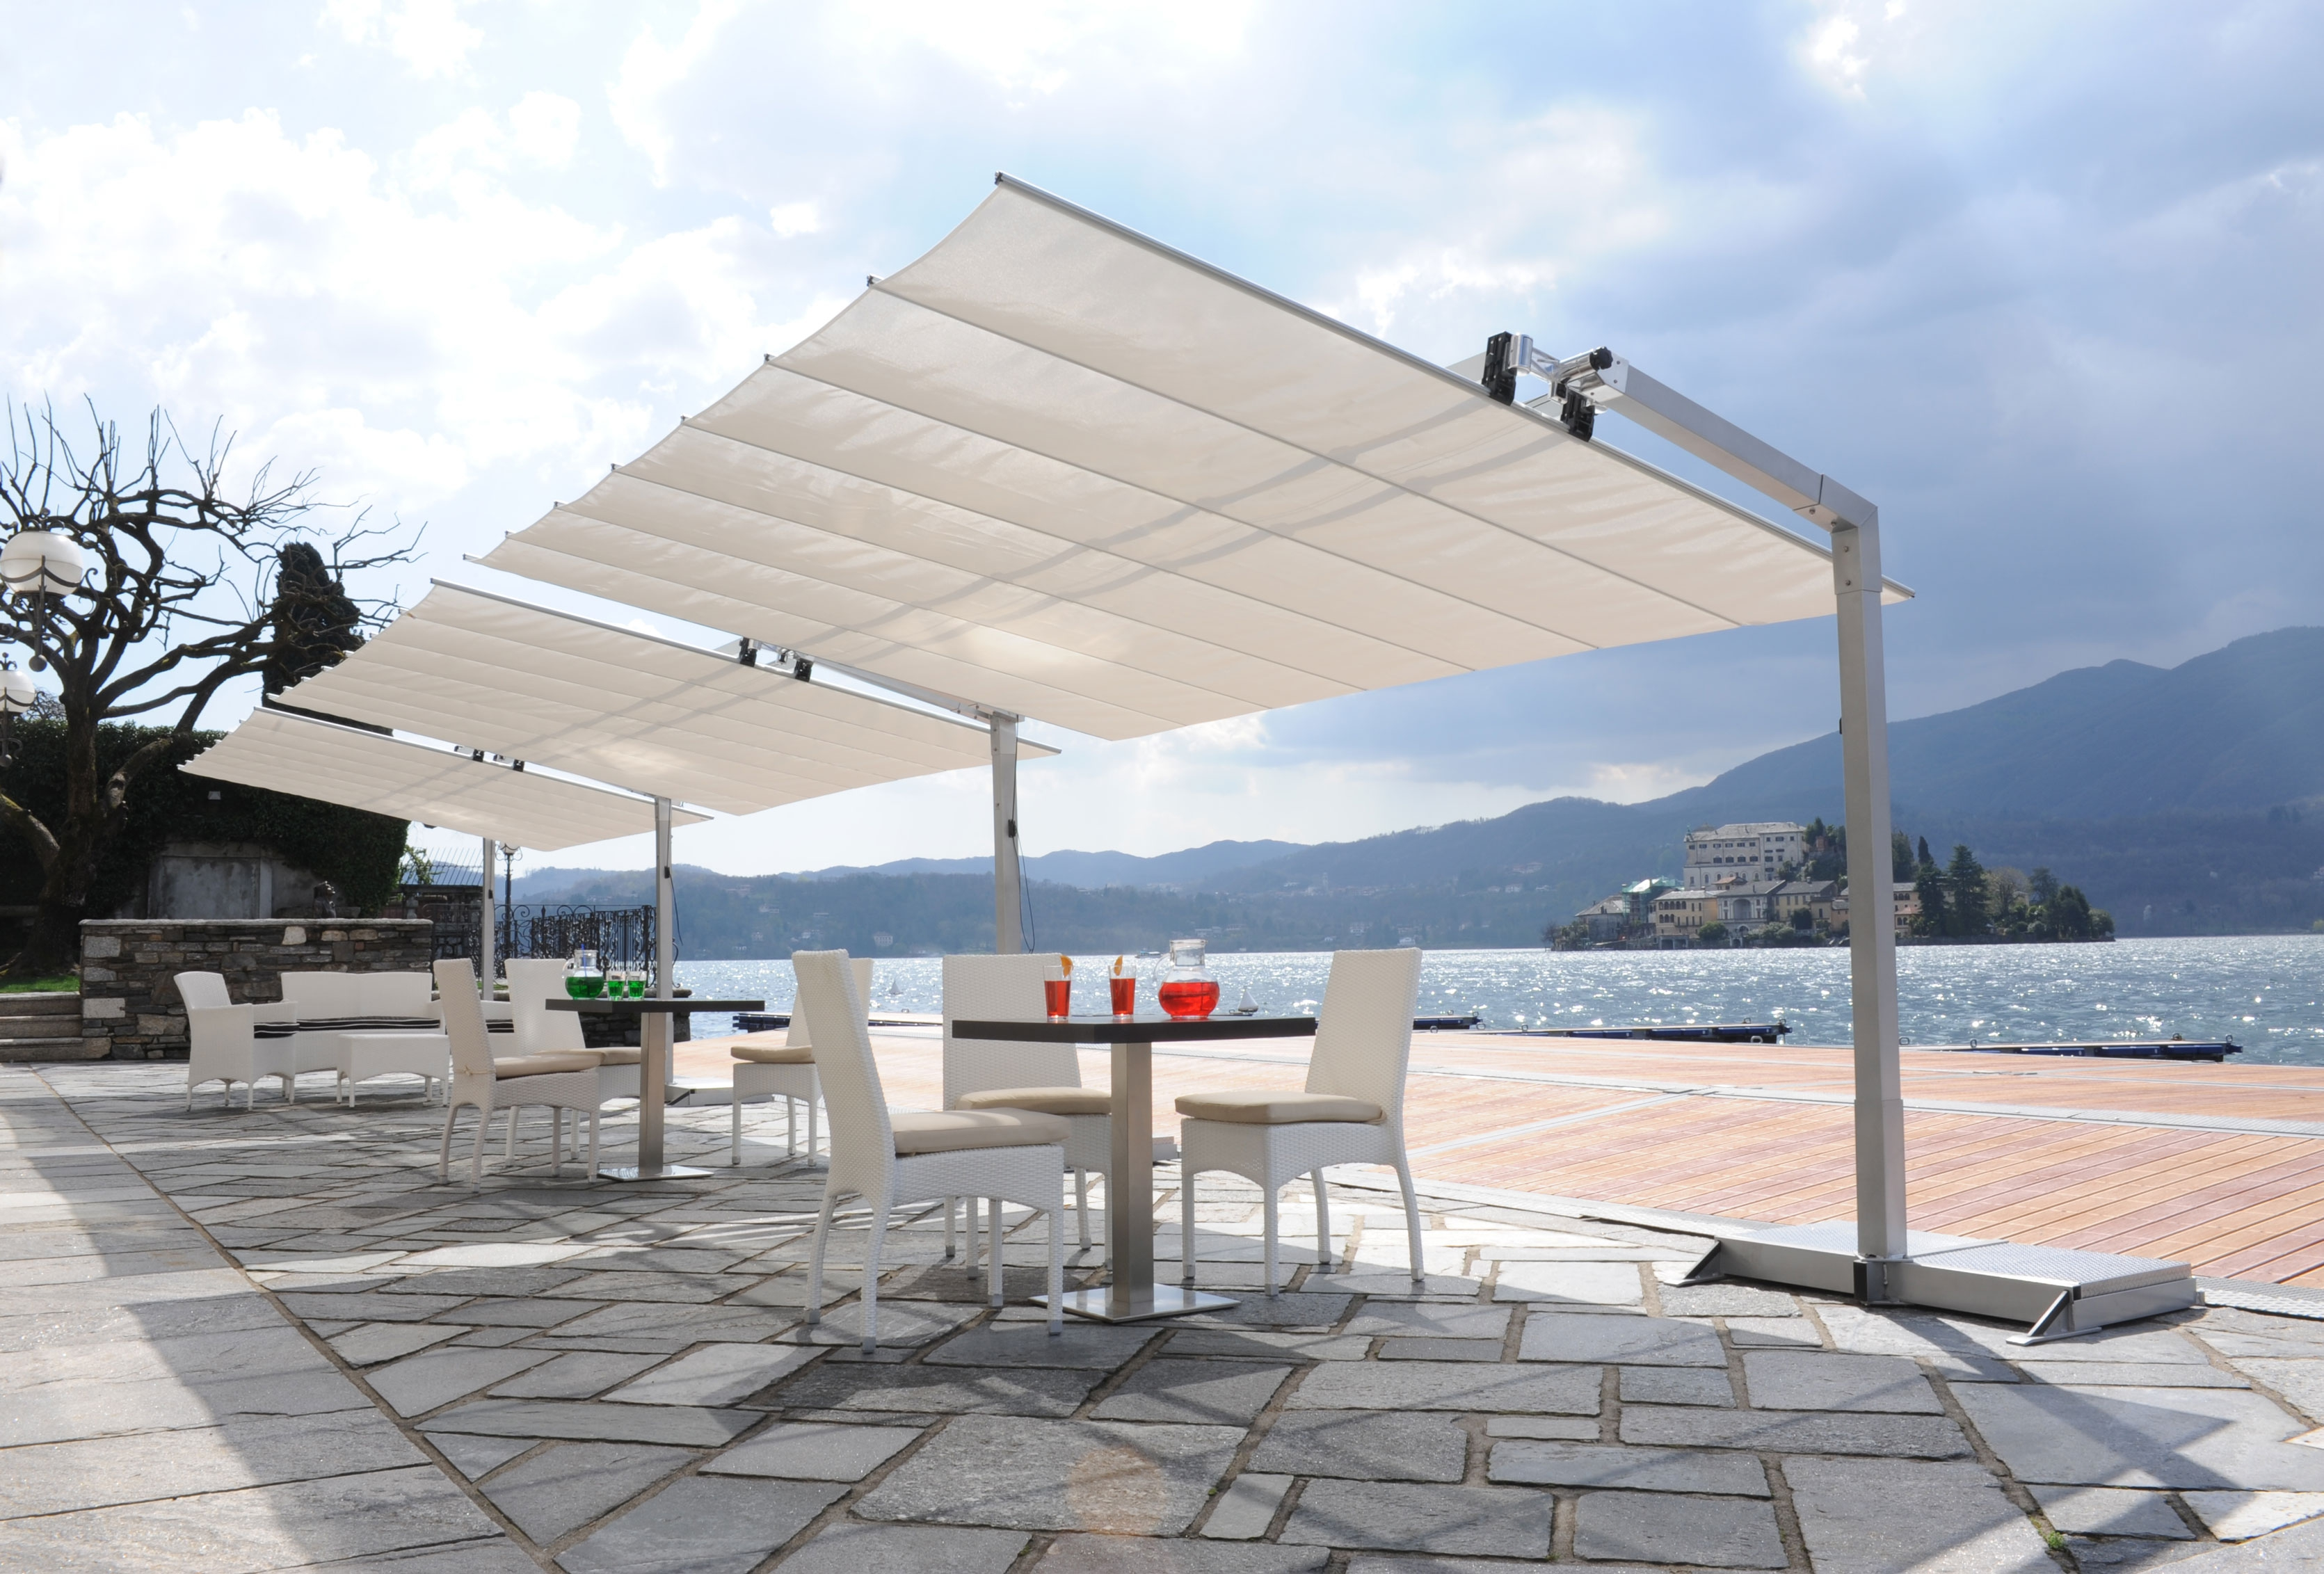 awning co patio maclin covers pcok freestanding